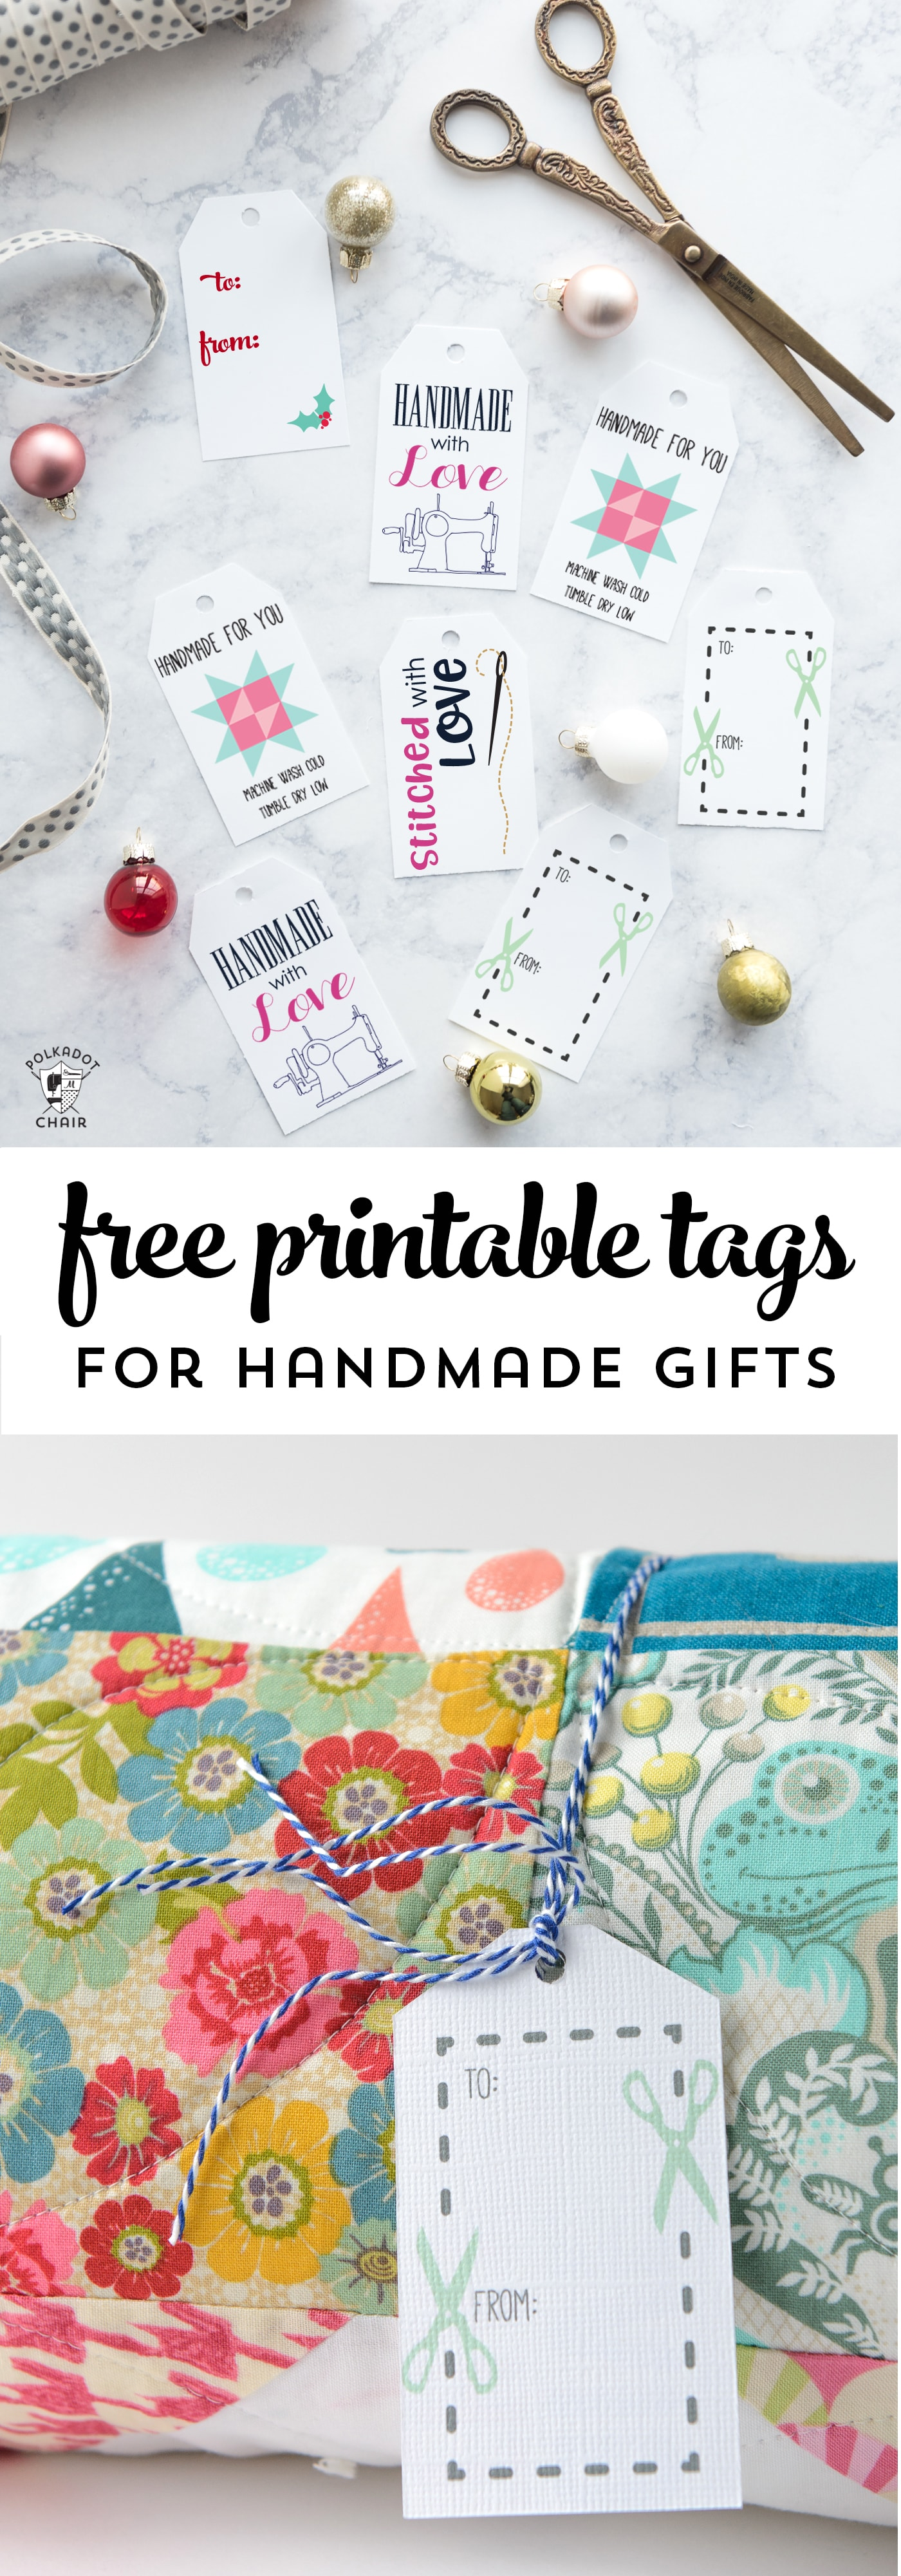 graphic regarding Printable Tags for Gifts identify 10+ Free of charge Printable Reward Tags Great for Homemade Presents